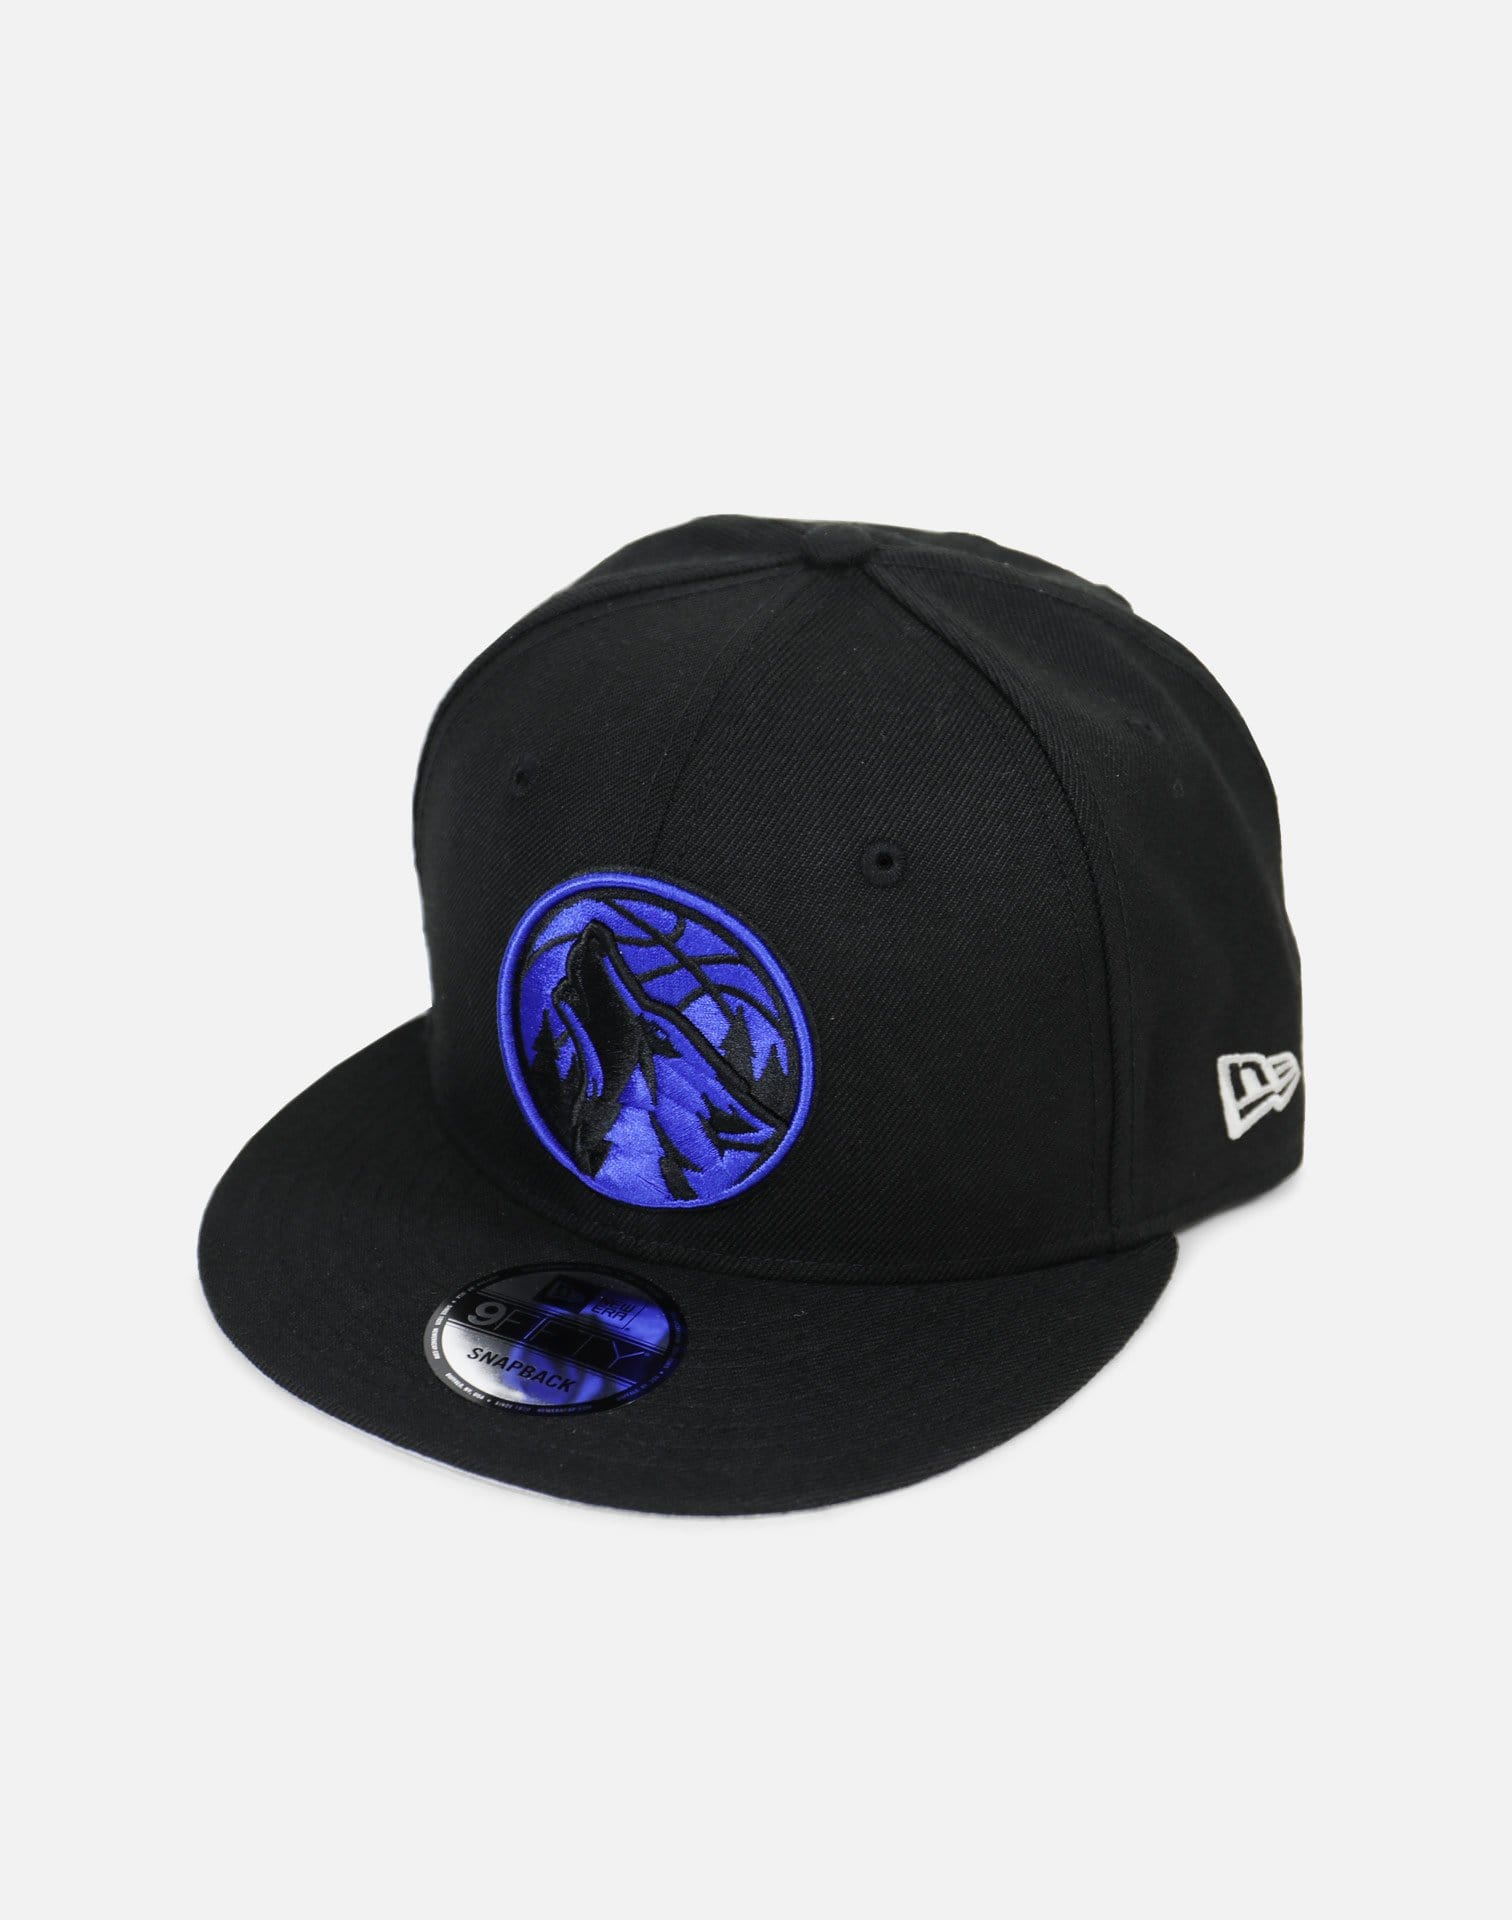 New Era Minnesota Timberwolves Royal Hood Snapback Hat (Black/Royal)